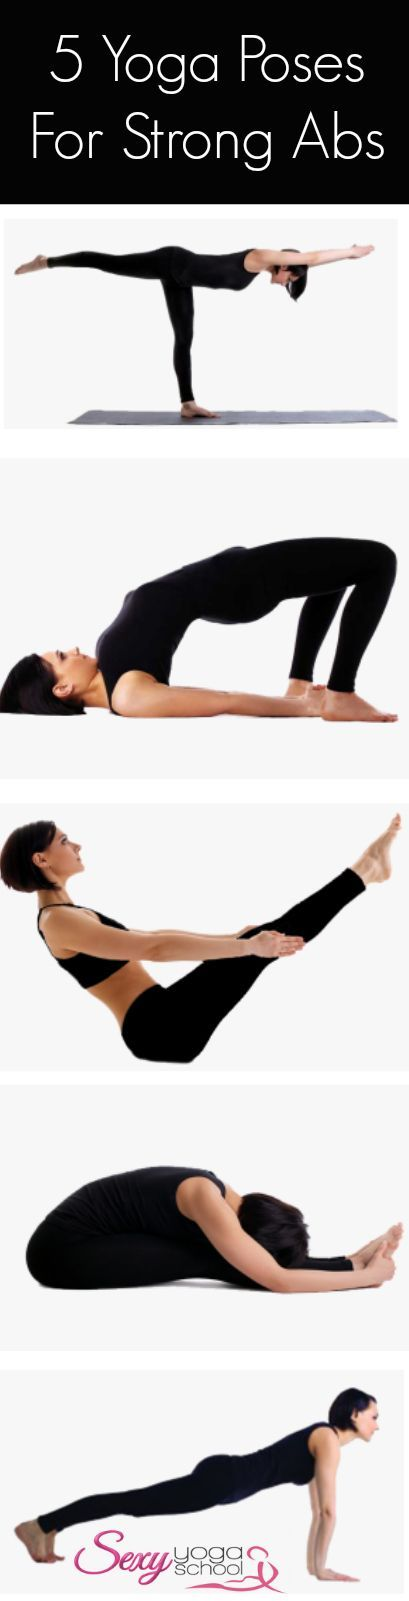 DownDog Yoga for Fun & Fitness: 5 Yoga Poses for Strong Abs. From the Downdog Di...